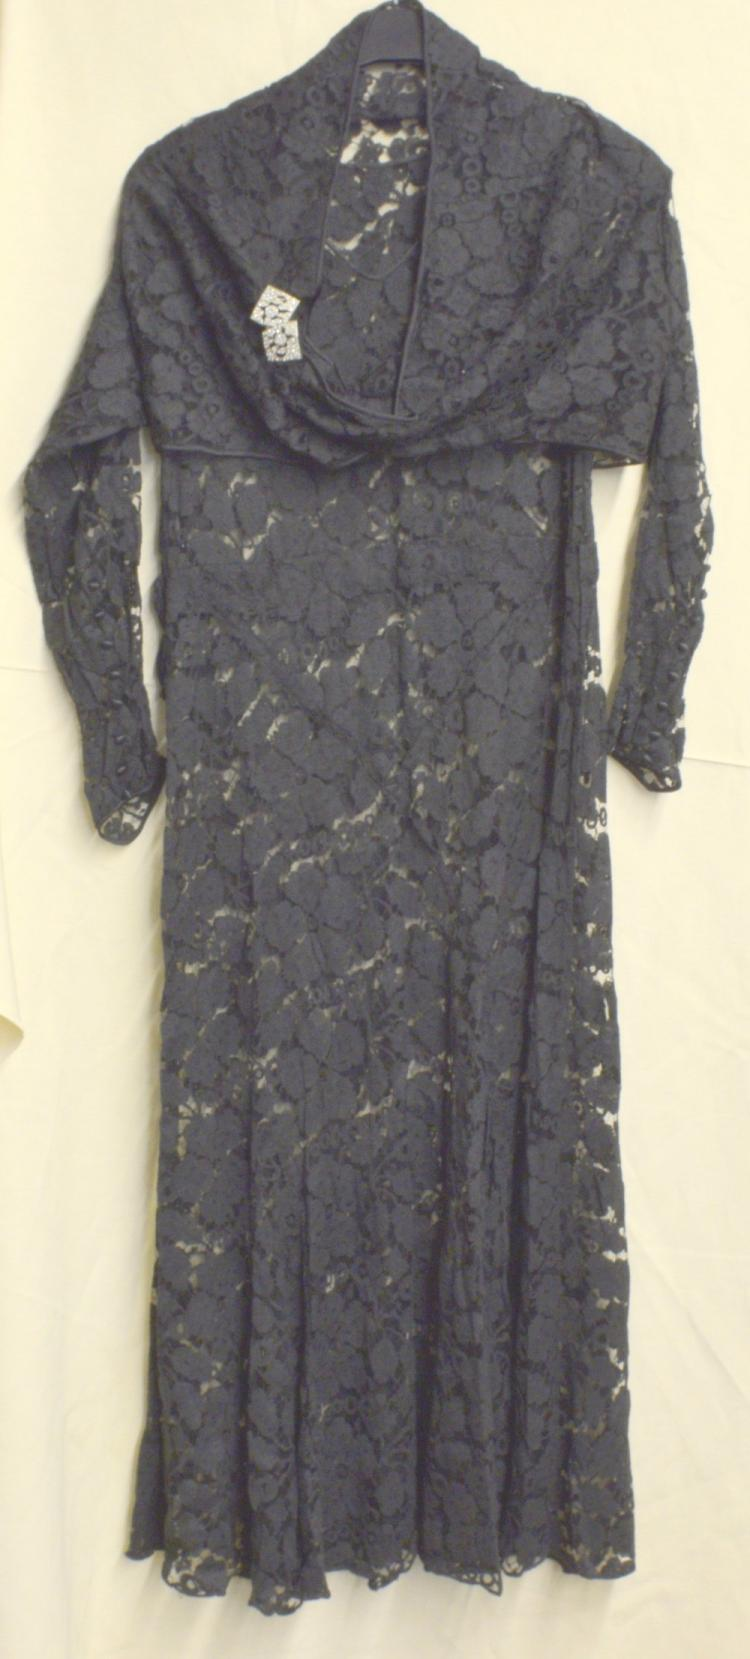 1930's lace dress and jacket, another similar long